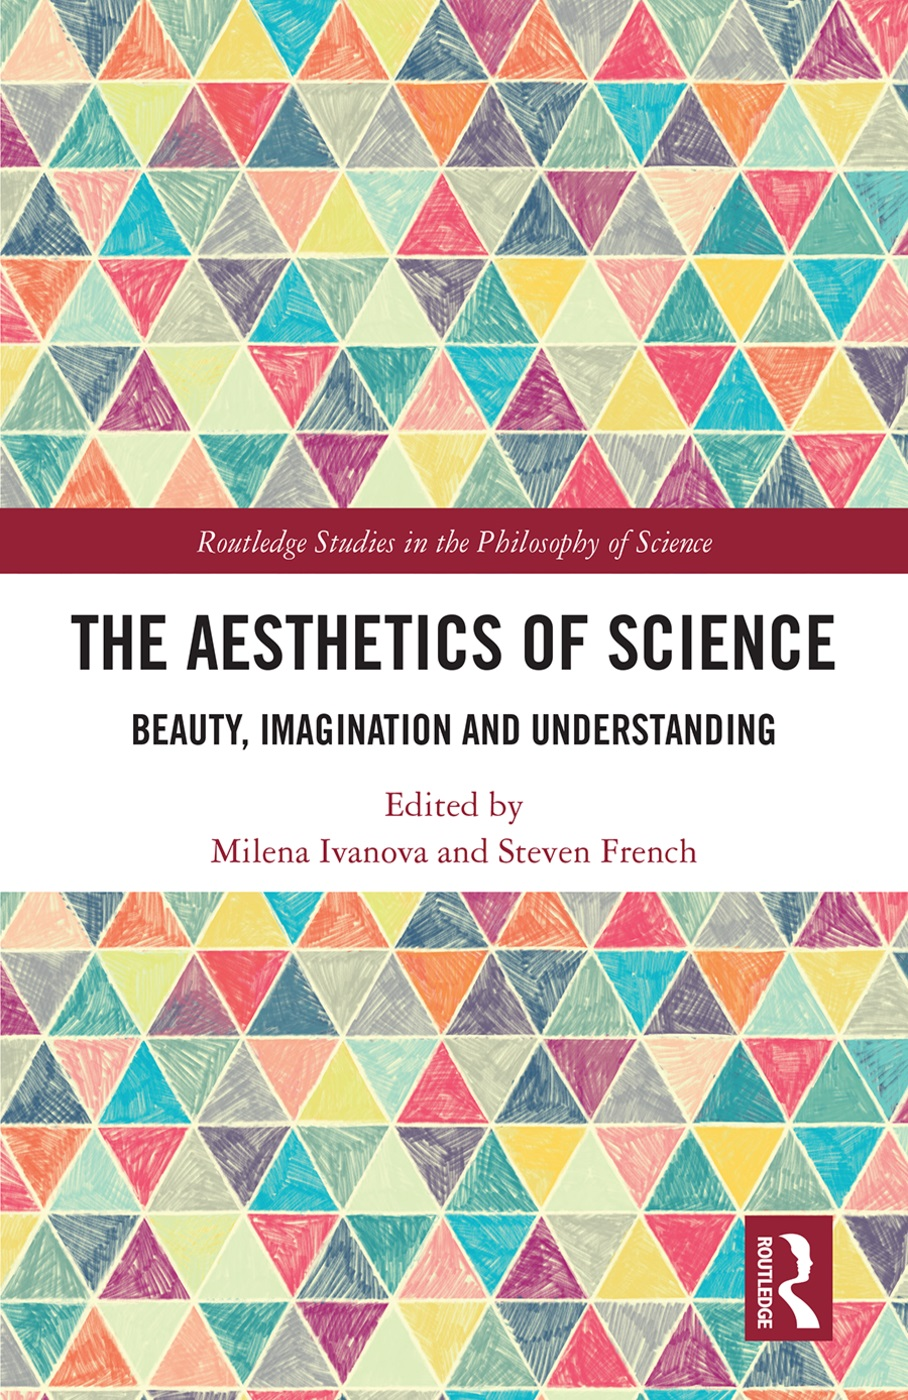 The Aesthetics of Science: Beauty, Imagination and Understanding